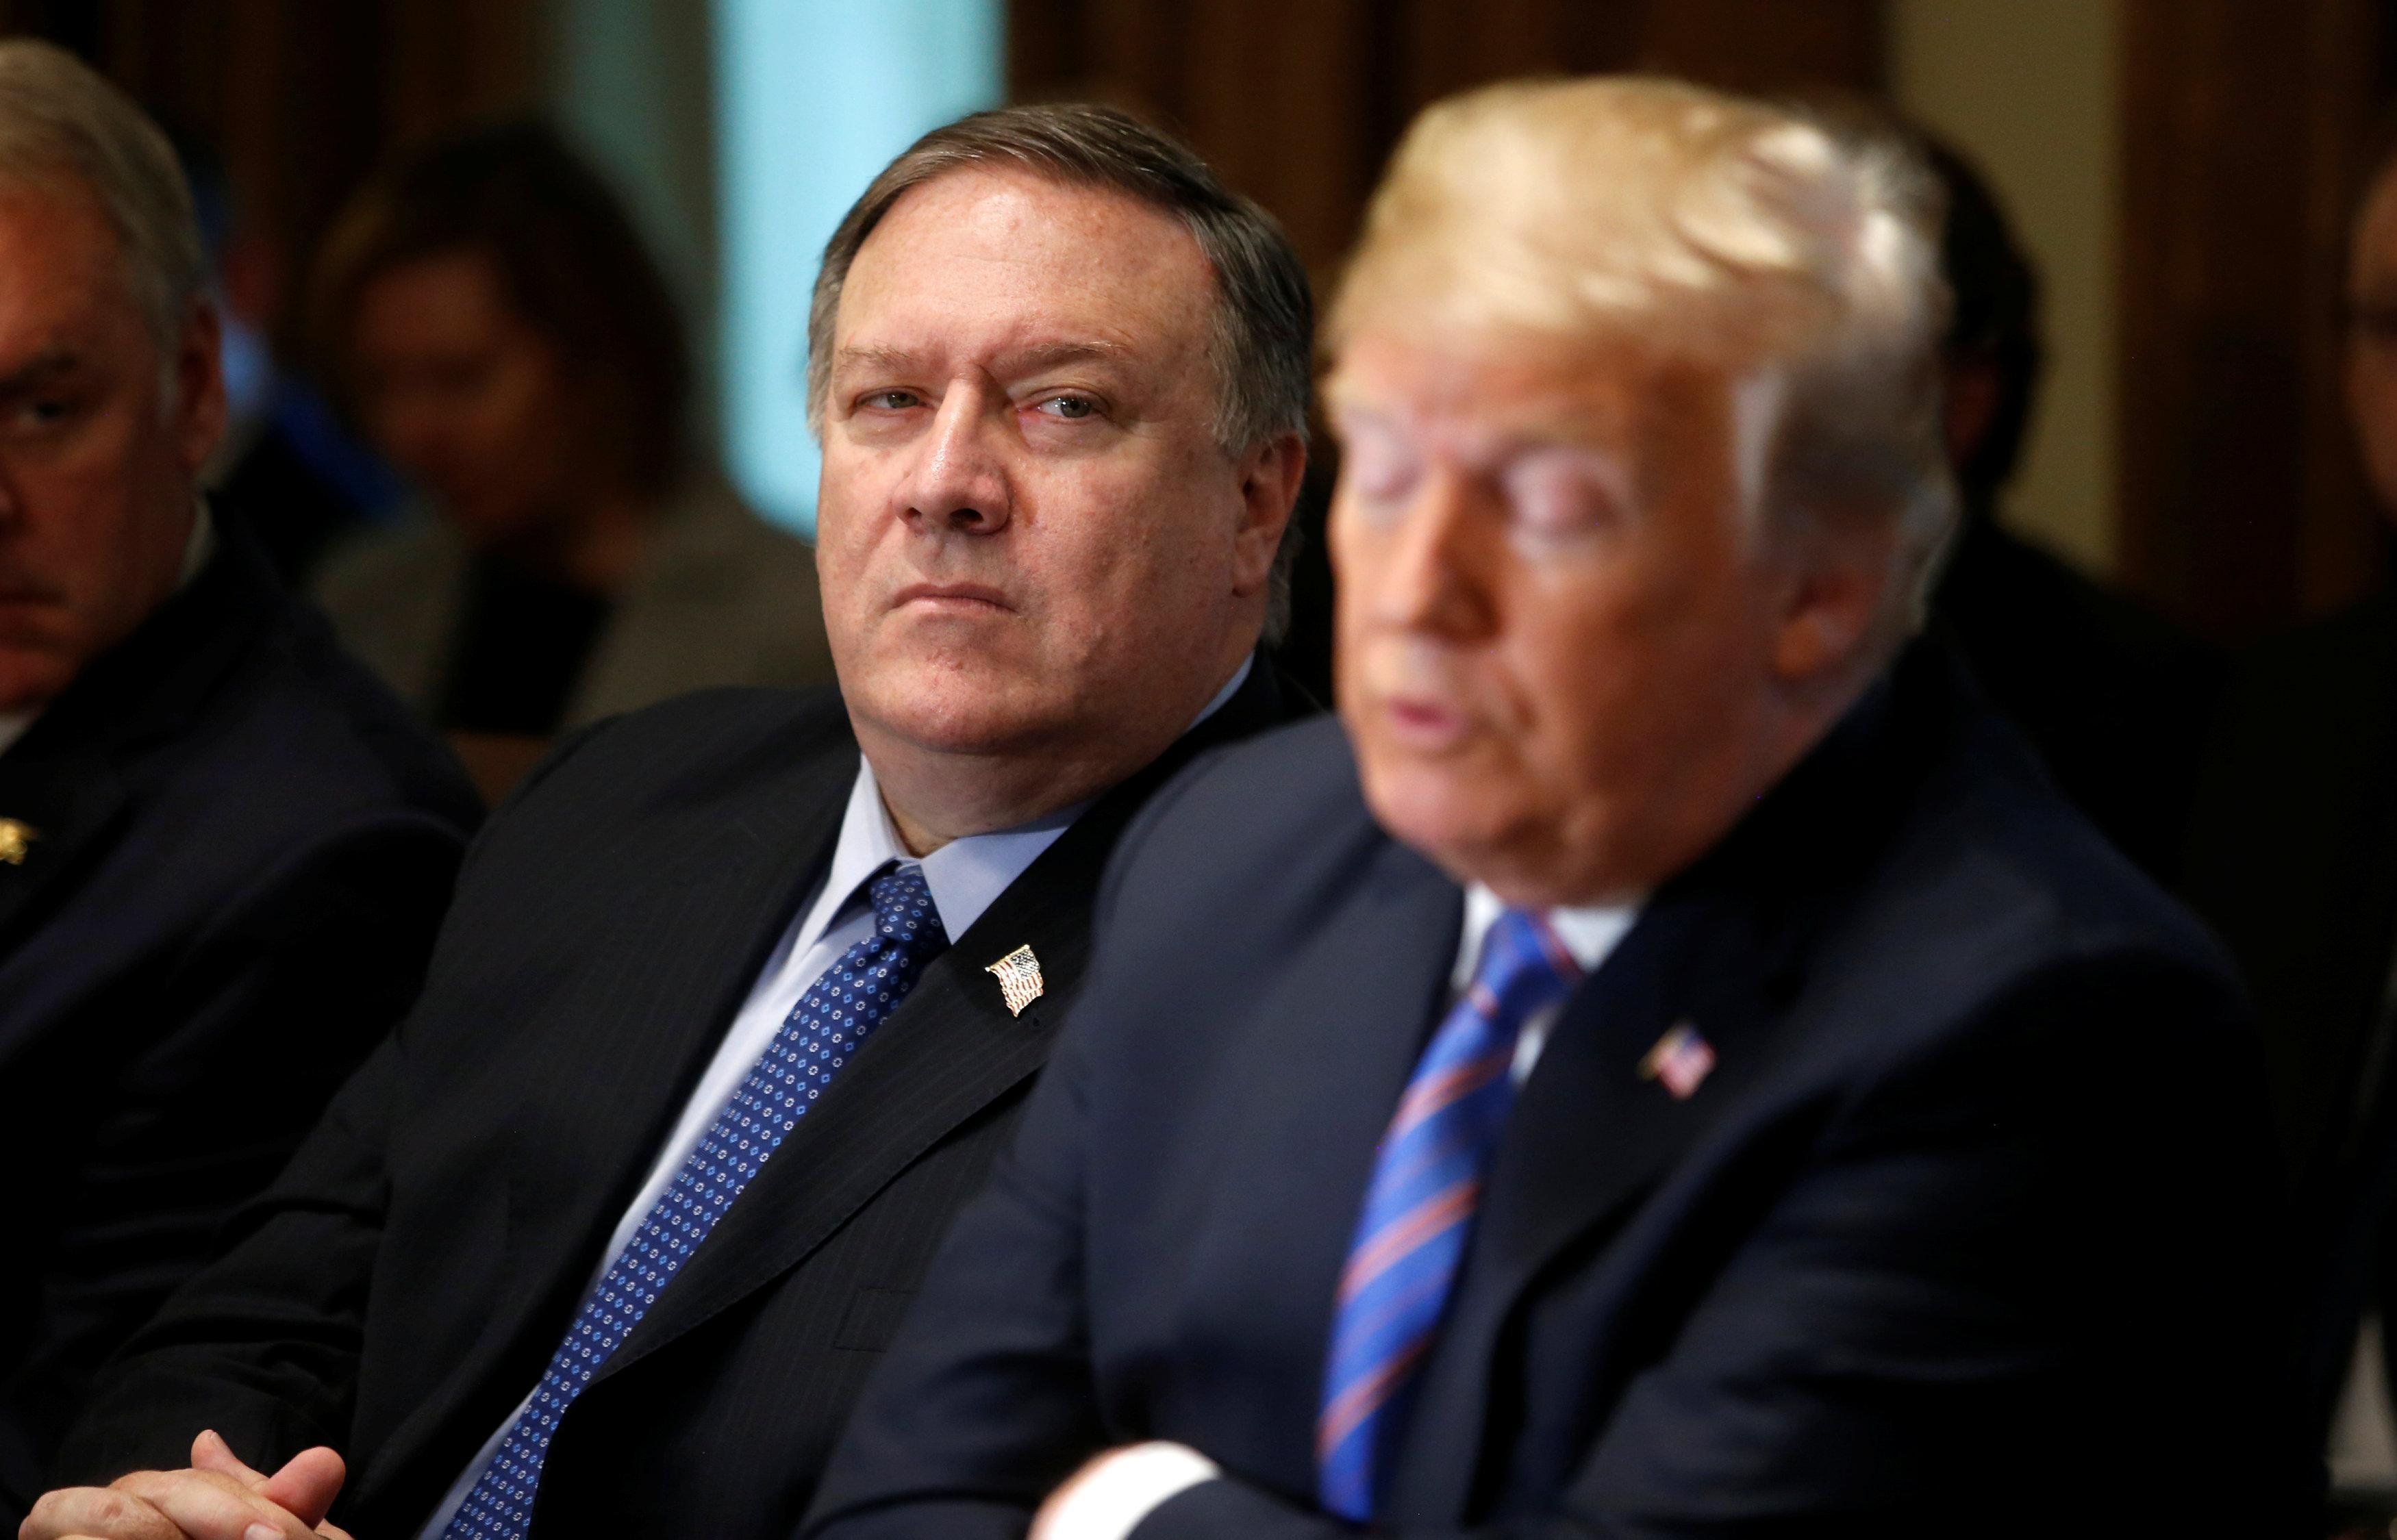 U.S. Secretary of State Mike Pompeo listens as President Donald Trump speaks during a cabinet meeting at the White House in Washington, U.S., July 18, 2018. Leah Millis